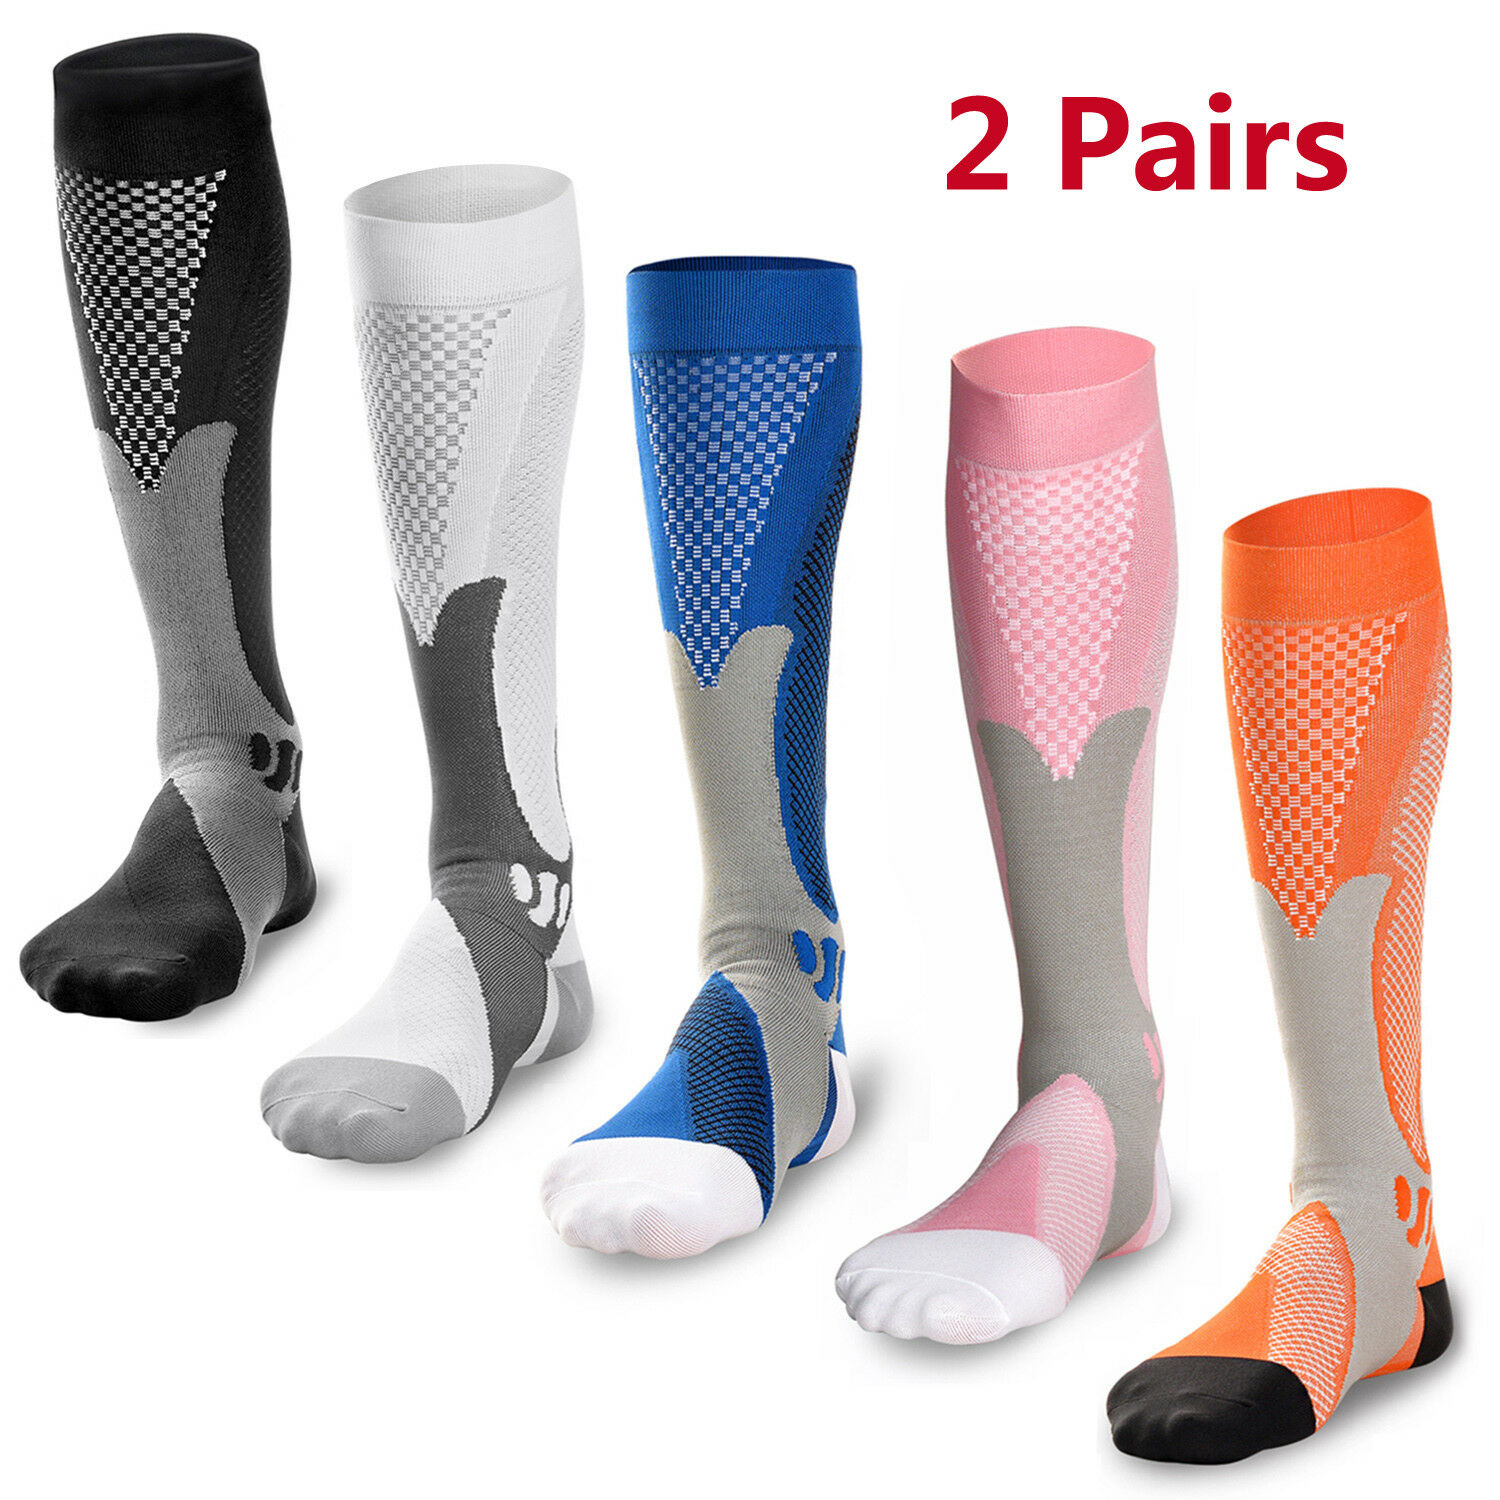 2 Pairs 30-40 mmhg Compression Knee High Stockings Relief Ca